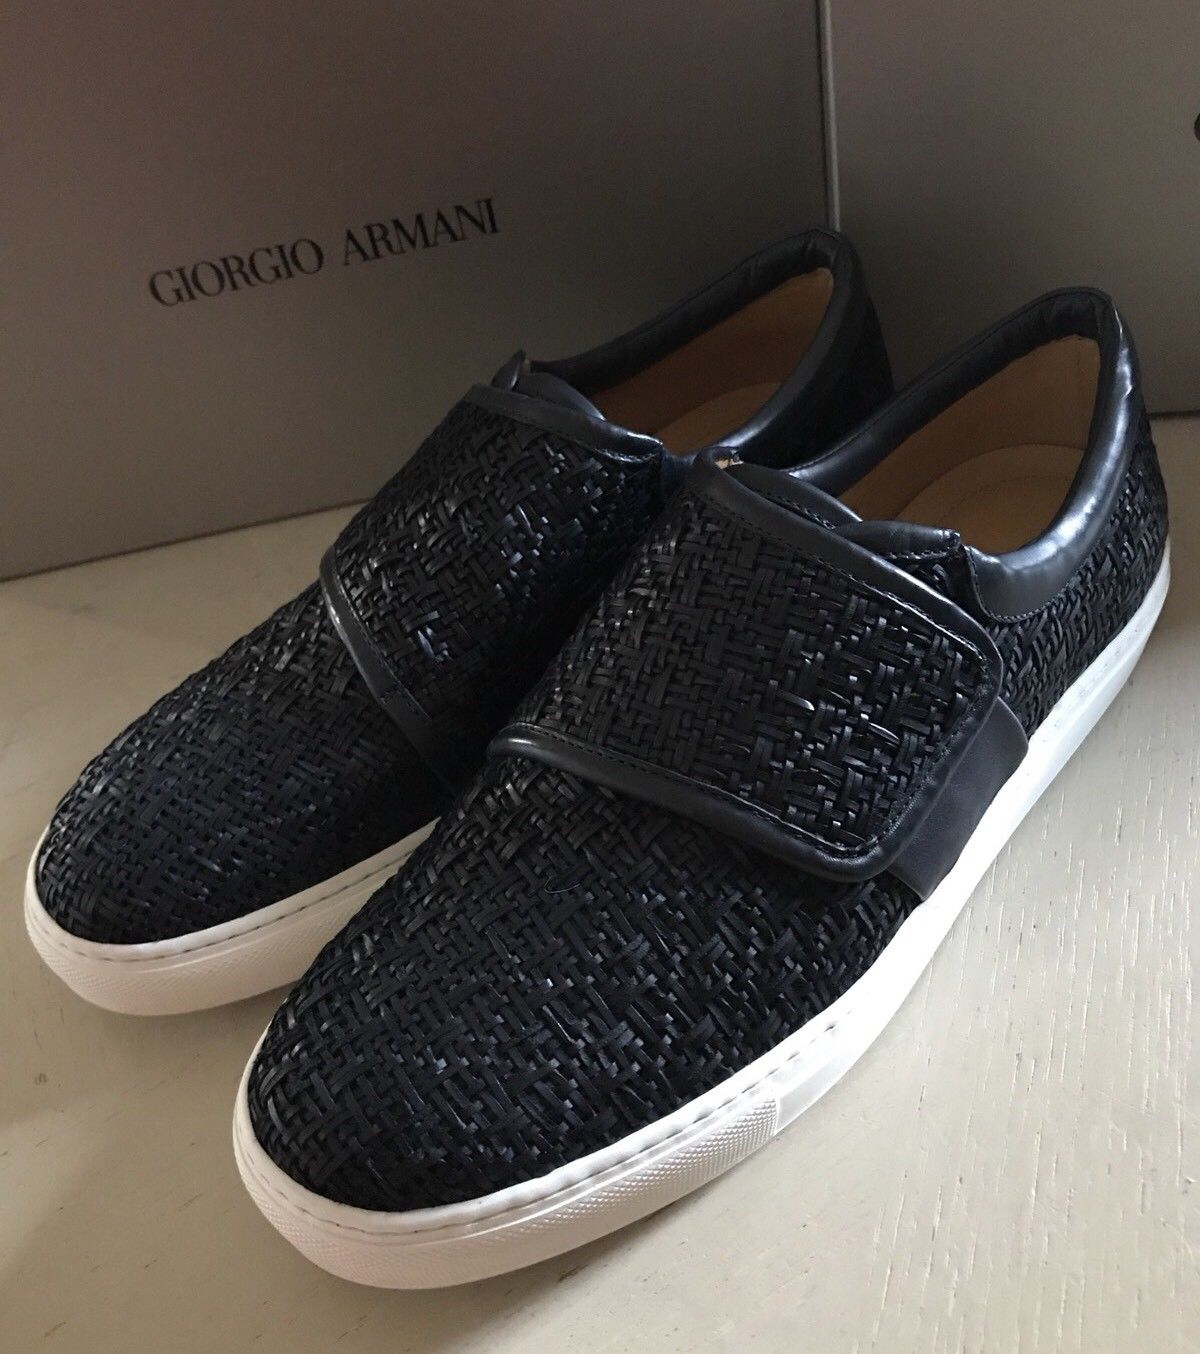 New $1475 Giorgio Armani Mens Leather Sneakers Shoes Dark Blue 11 US 1J085 Italy - BAYSUPERSTORE